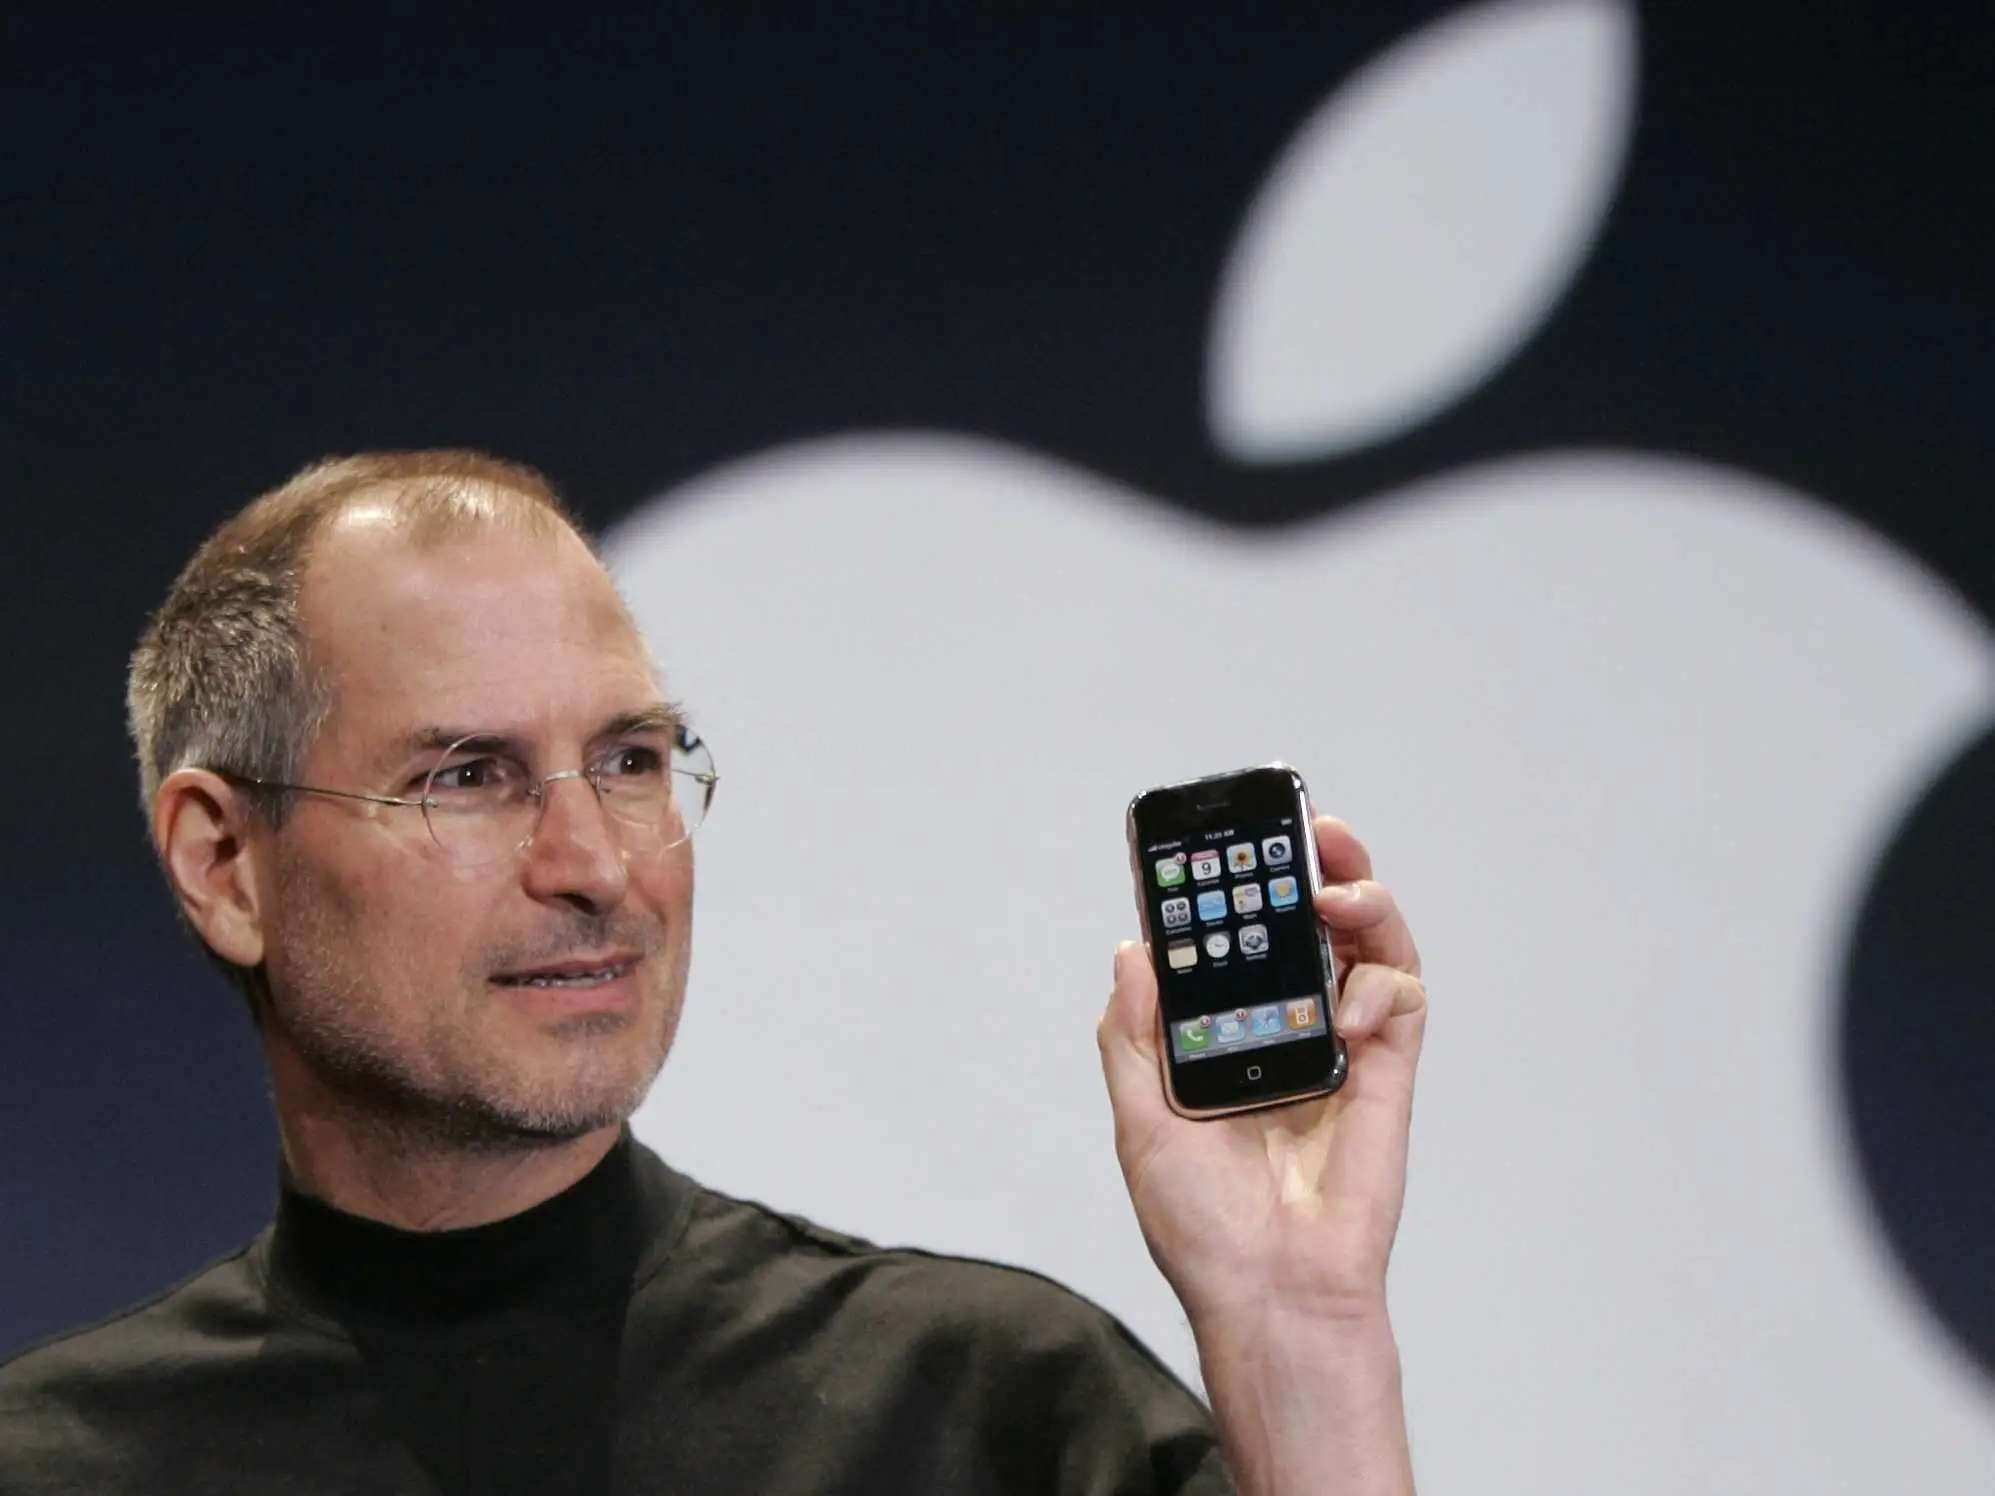 That said, it's fun to look back and see how many really basic features were missing from the first iPhone.